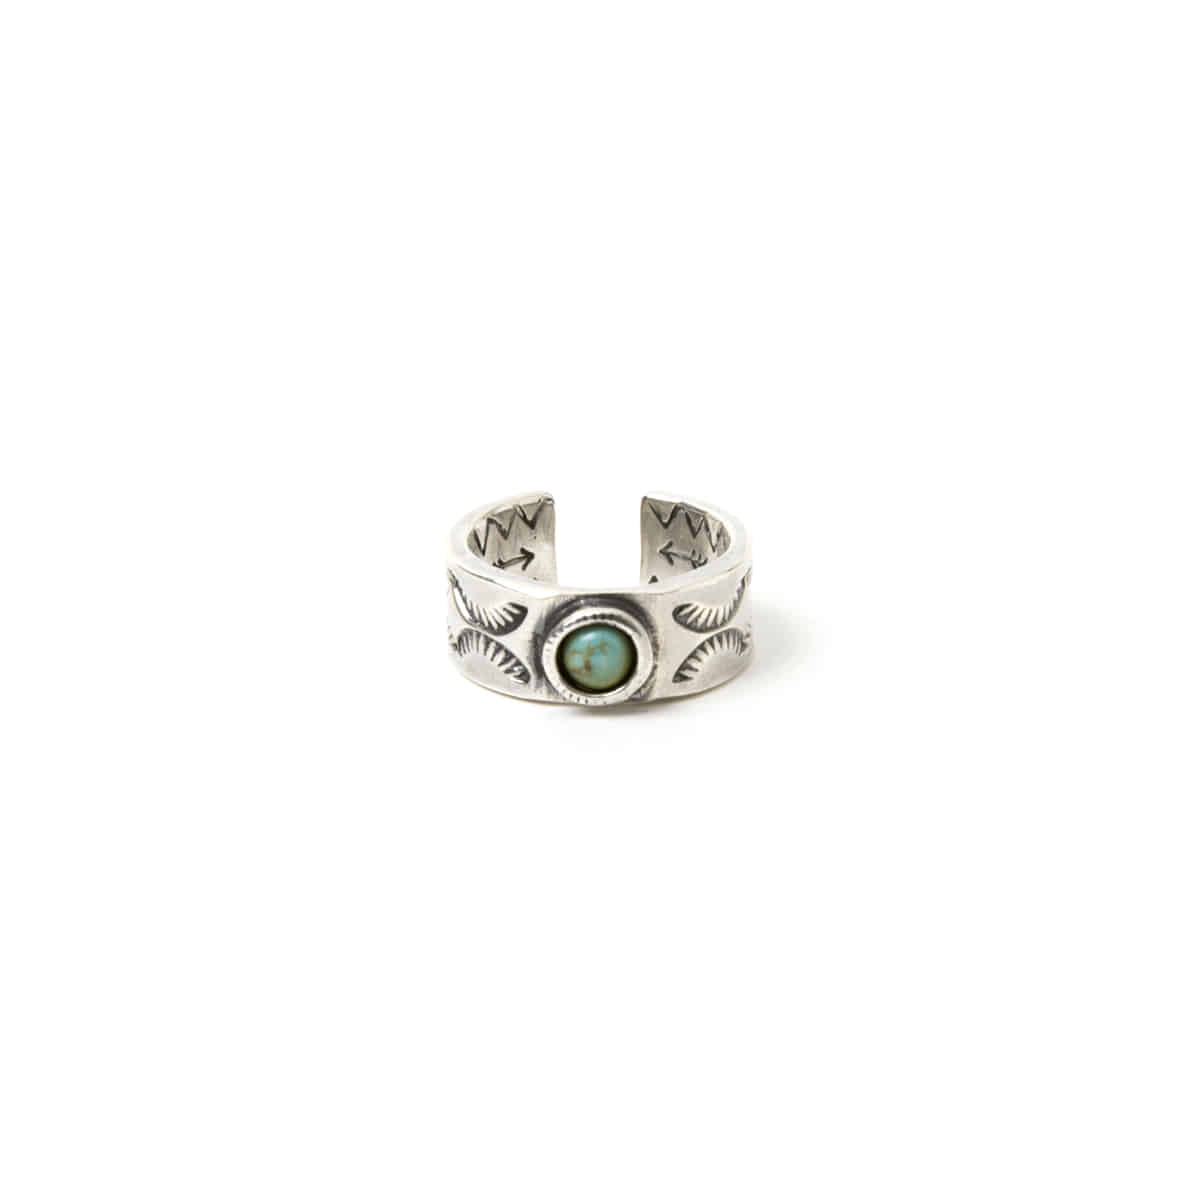 [NORTH WORKS] 900 SILVER TURQUOISE STAMP RING 'N-223'